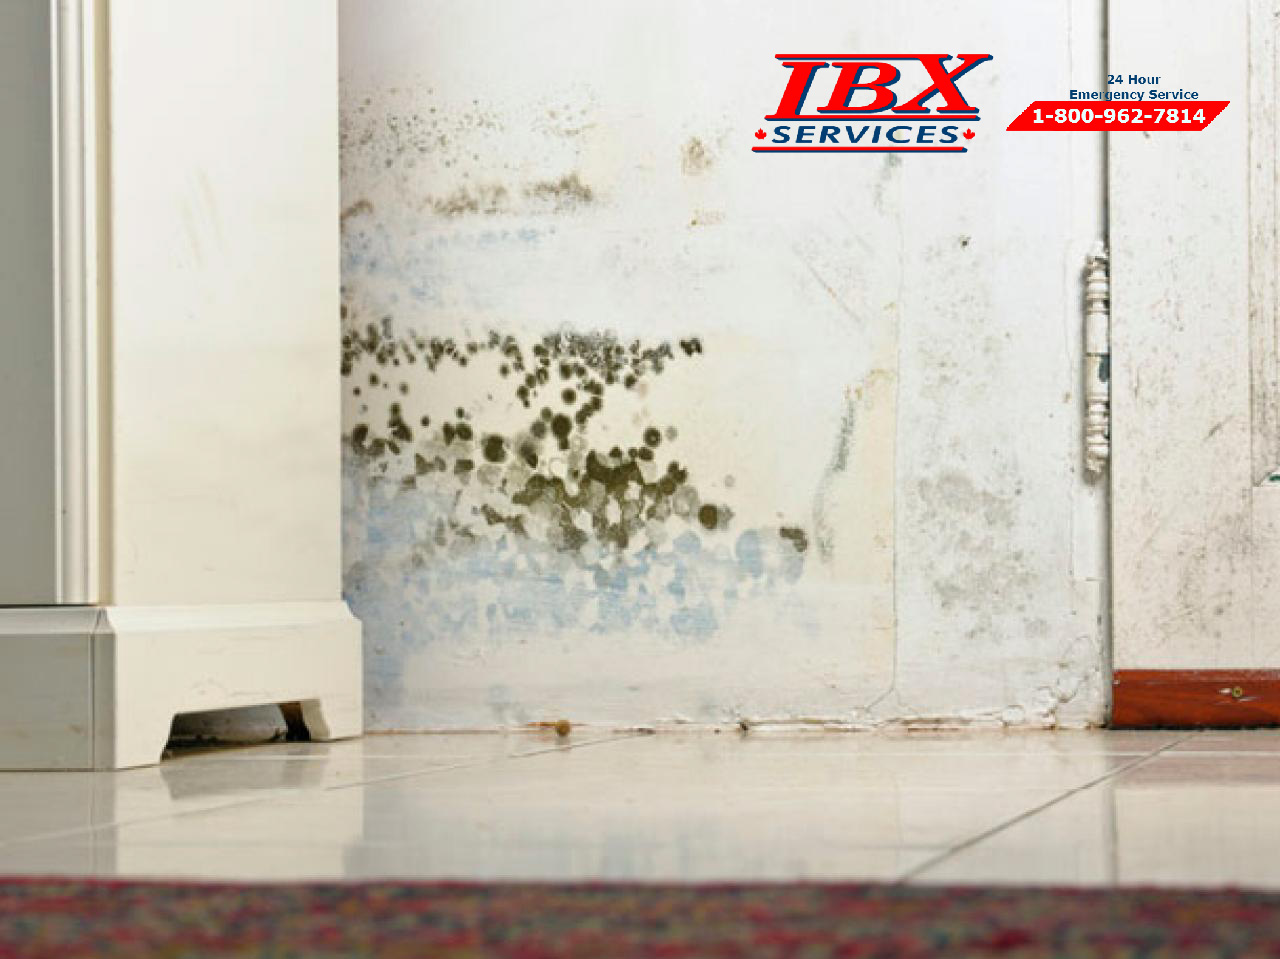 Bathroom Mold – IBX Services Team